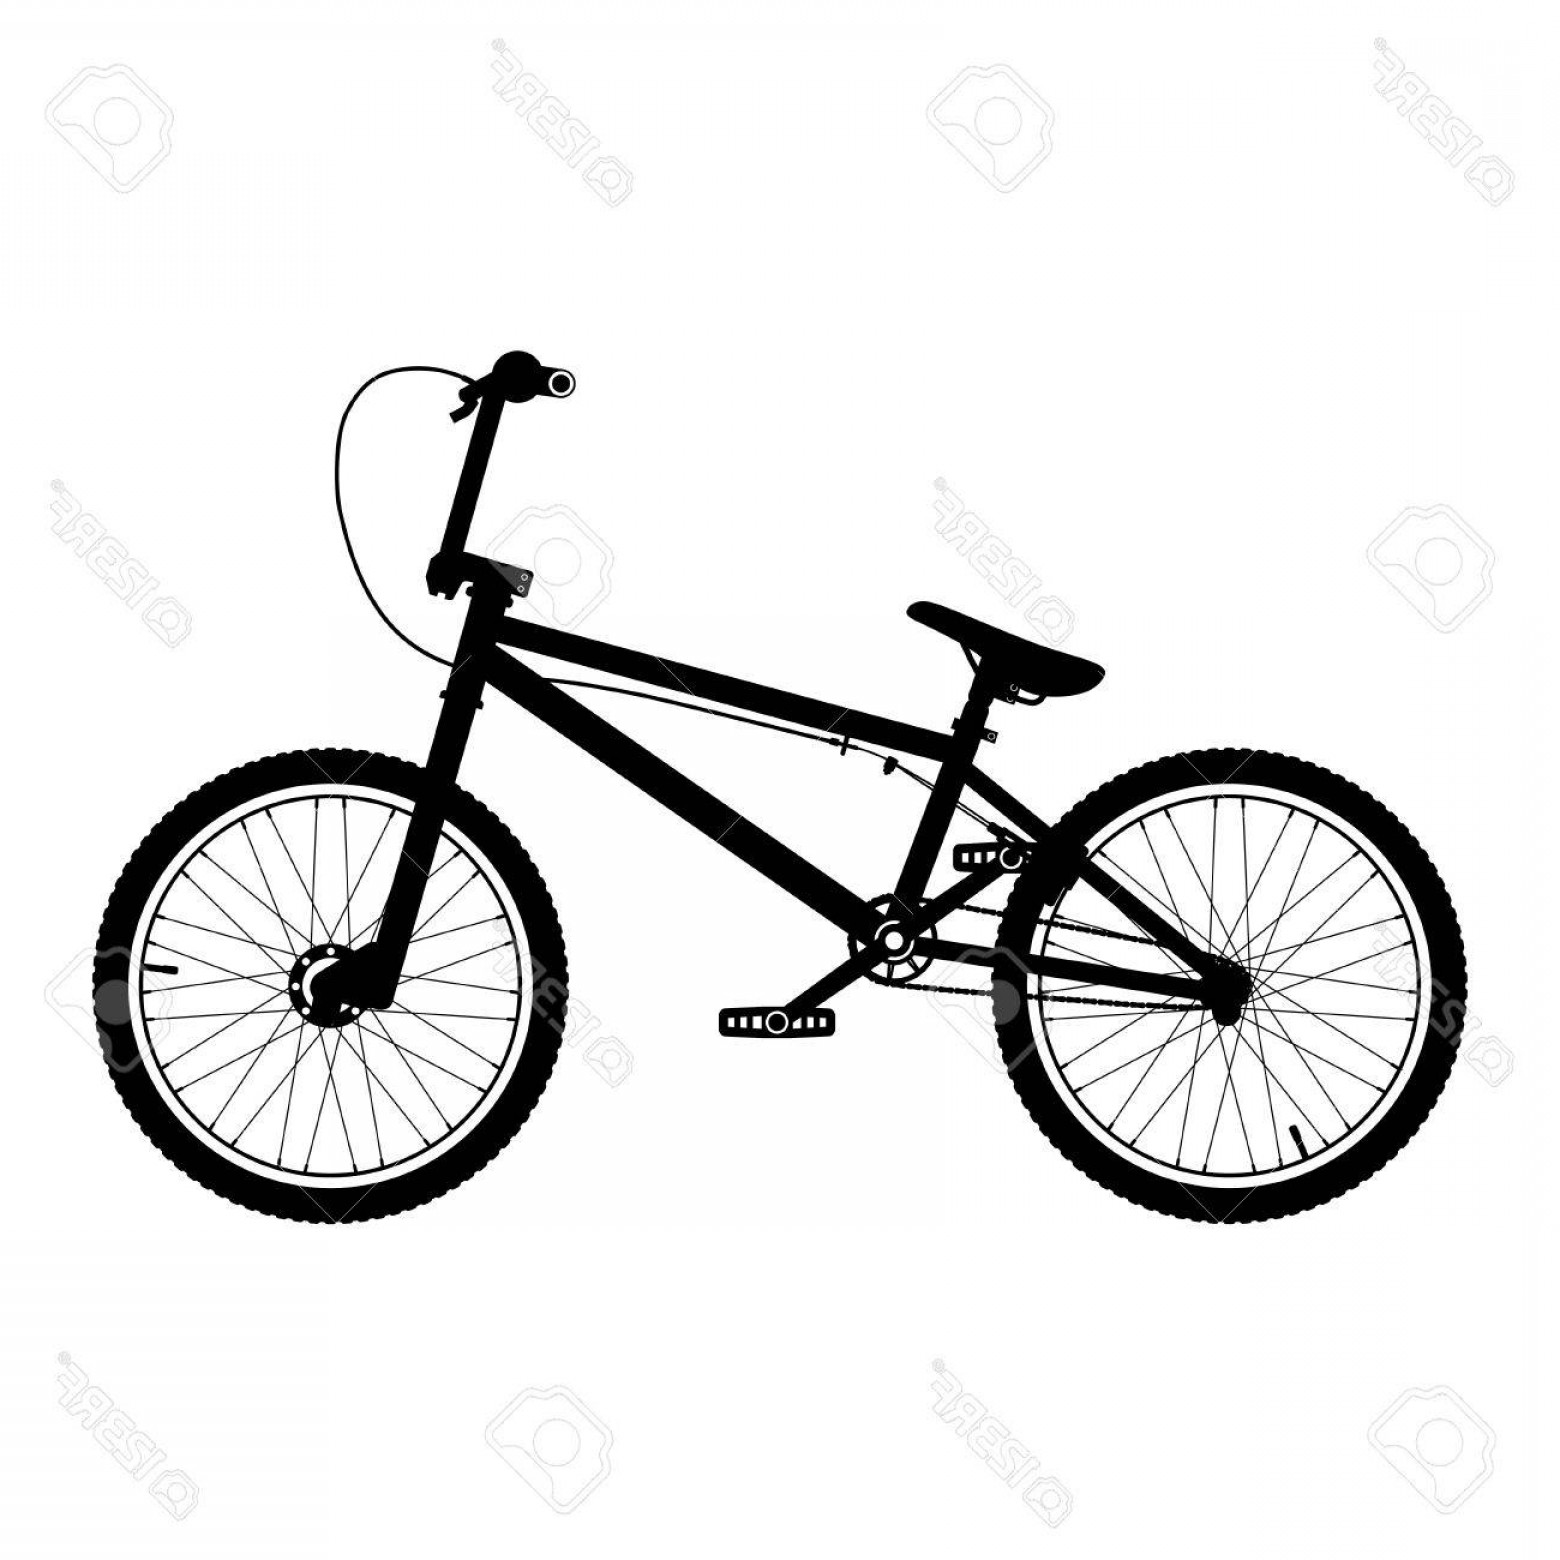 BMX Bike Tire Vector: Photostock Vector Vector Bmx Bicycle Silhouette Bmx Bike Isolated On White